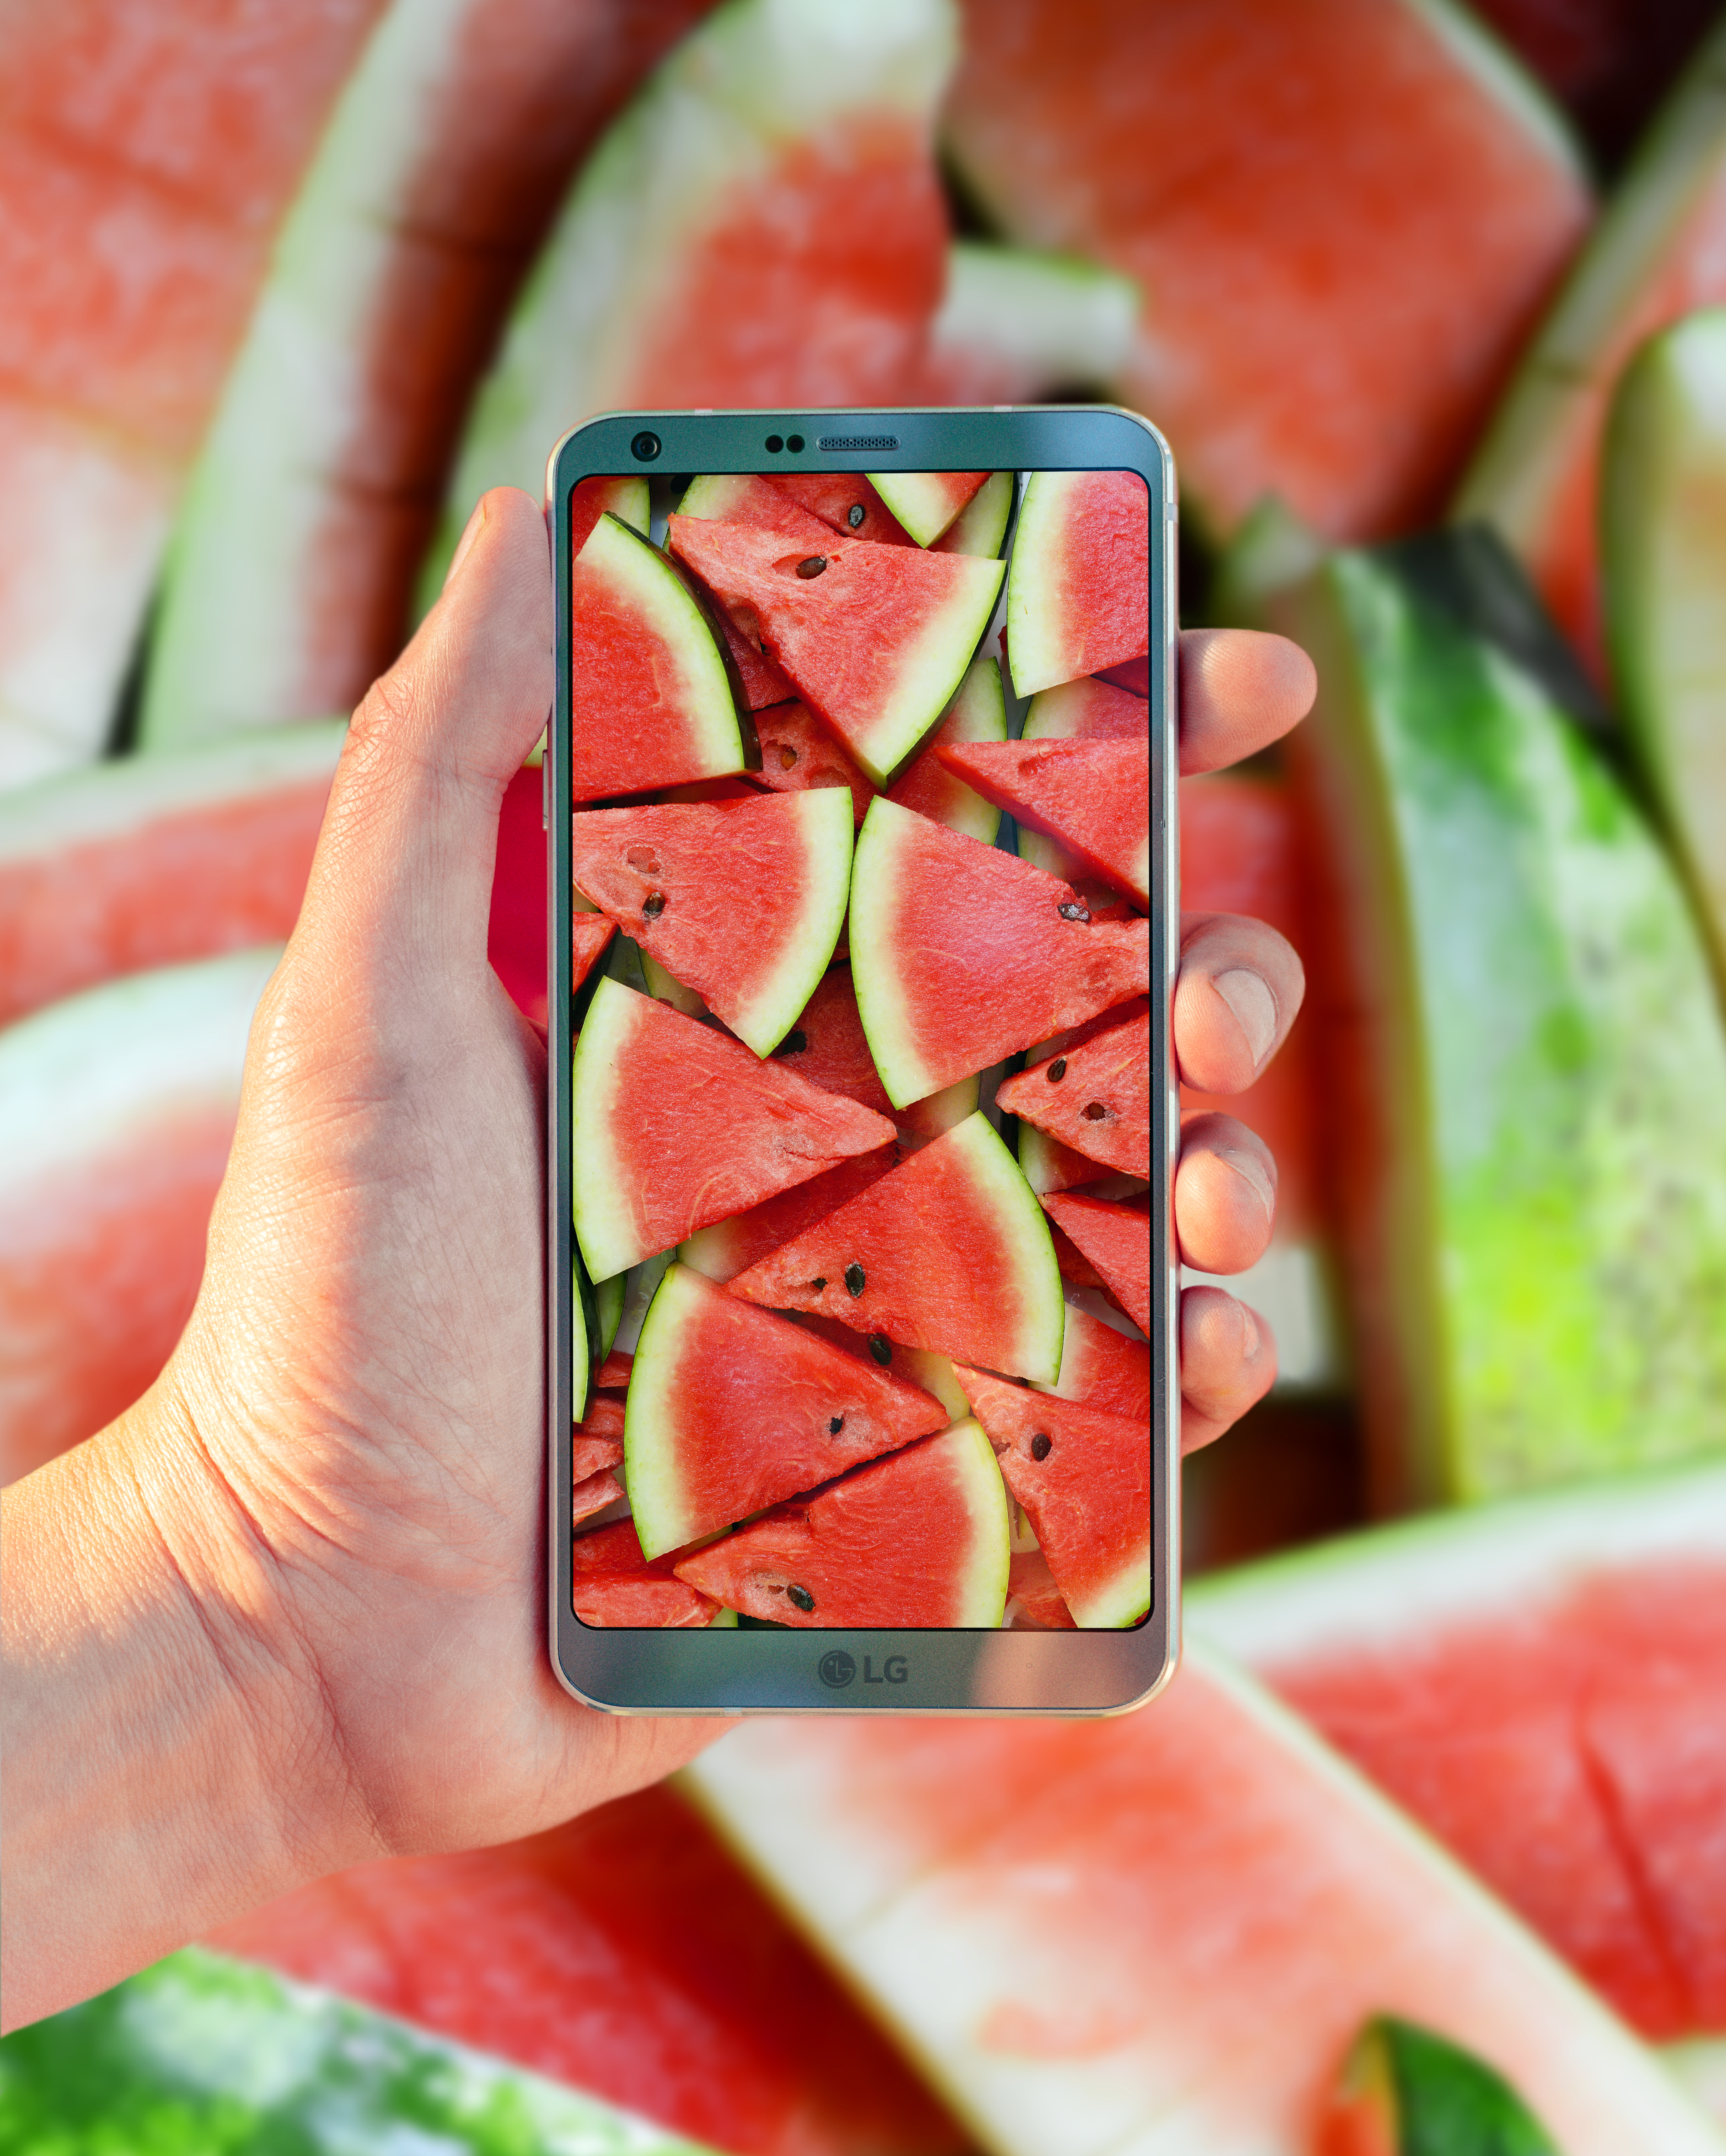 LG-G6-US-Social-WisconsinStory-WatermelonDay-Image-13